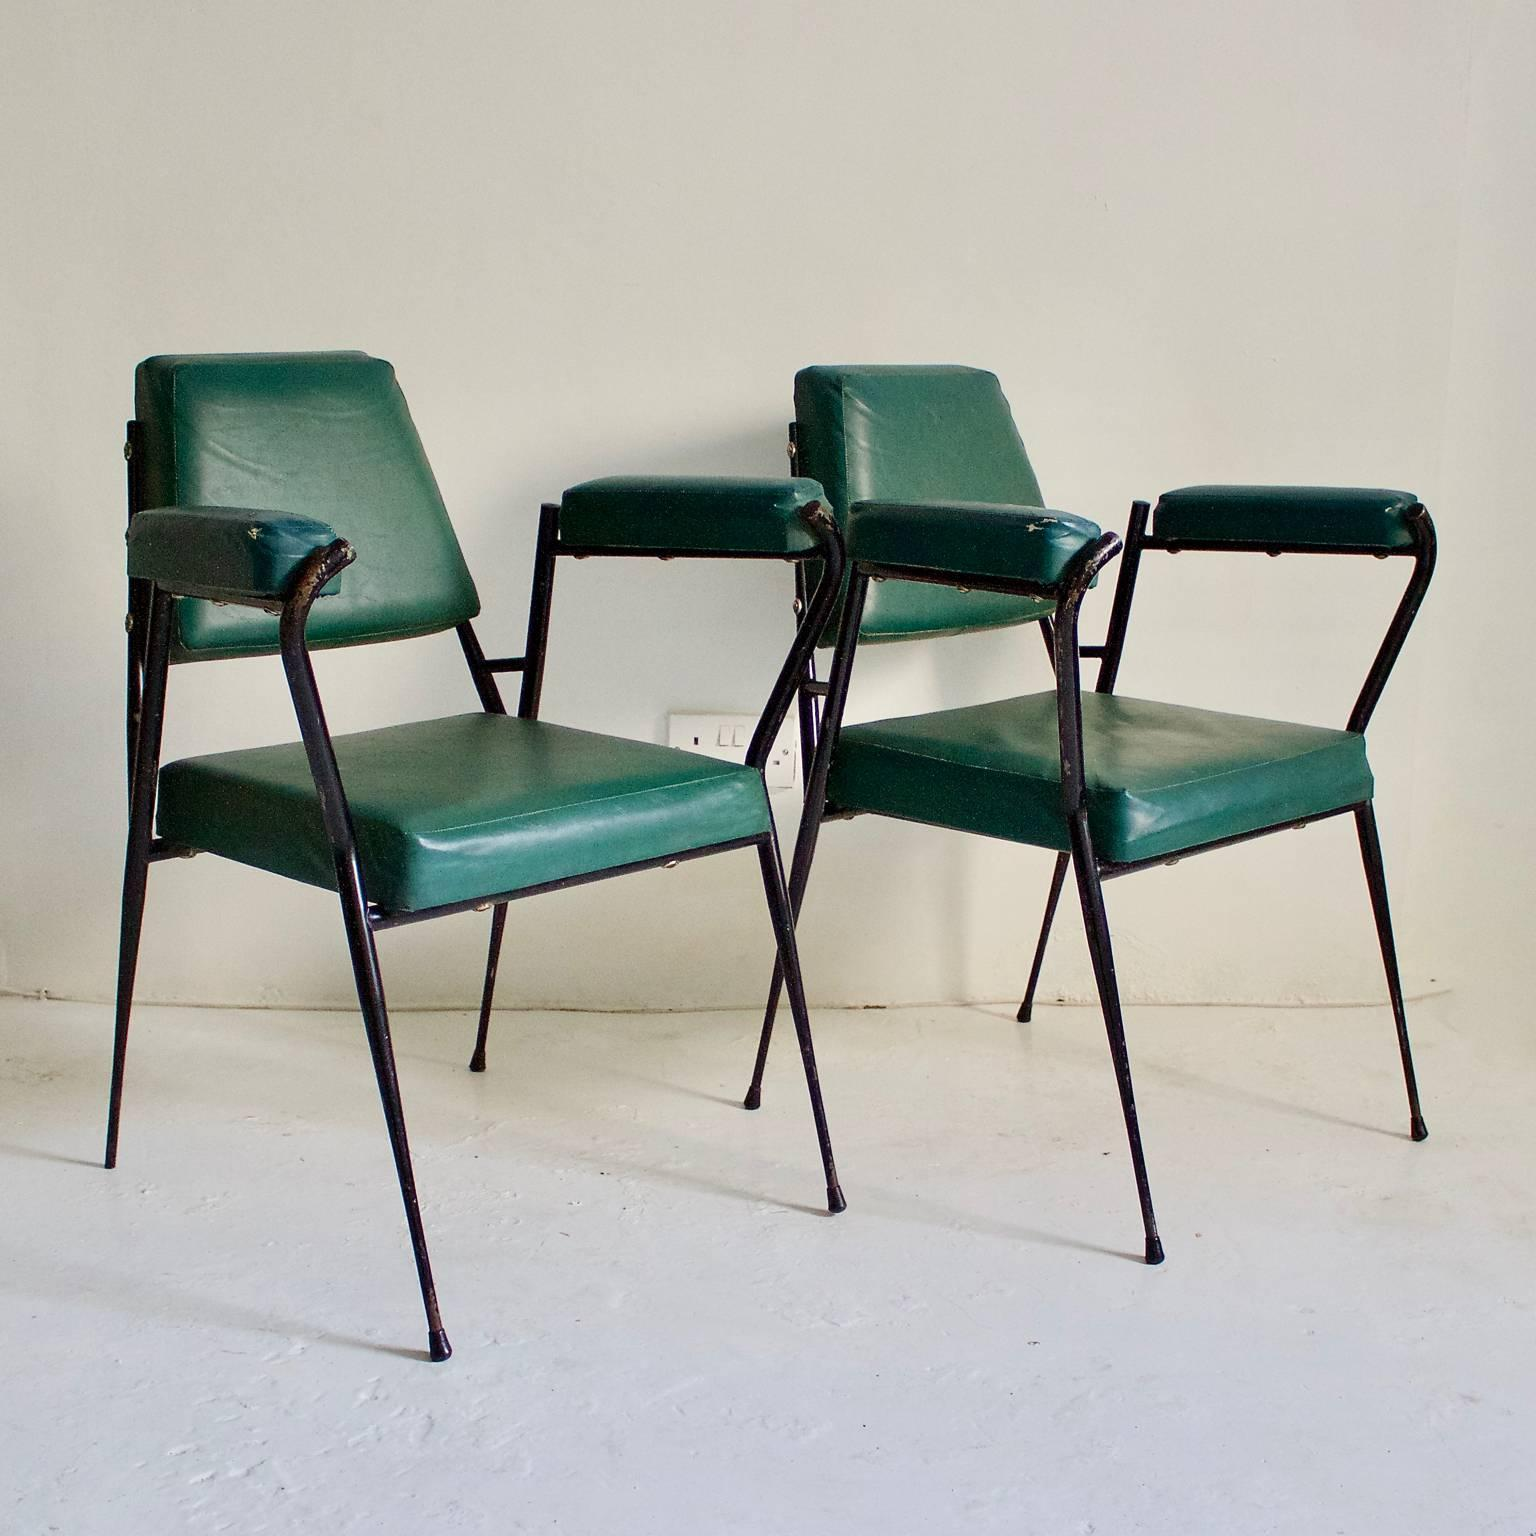 Superb A Pair Of Simple Italian Office Chairs Or Occasional Chairs, Manufactured  By Fratelli Ferrari U0026